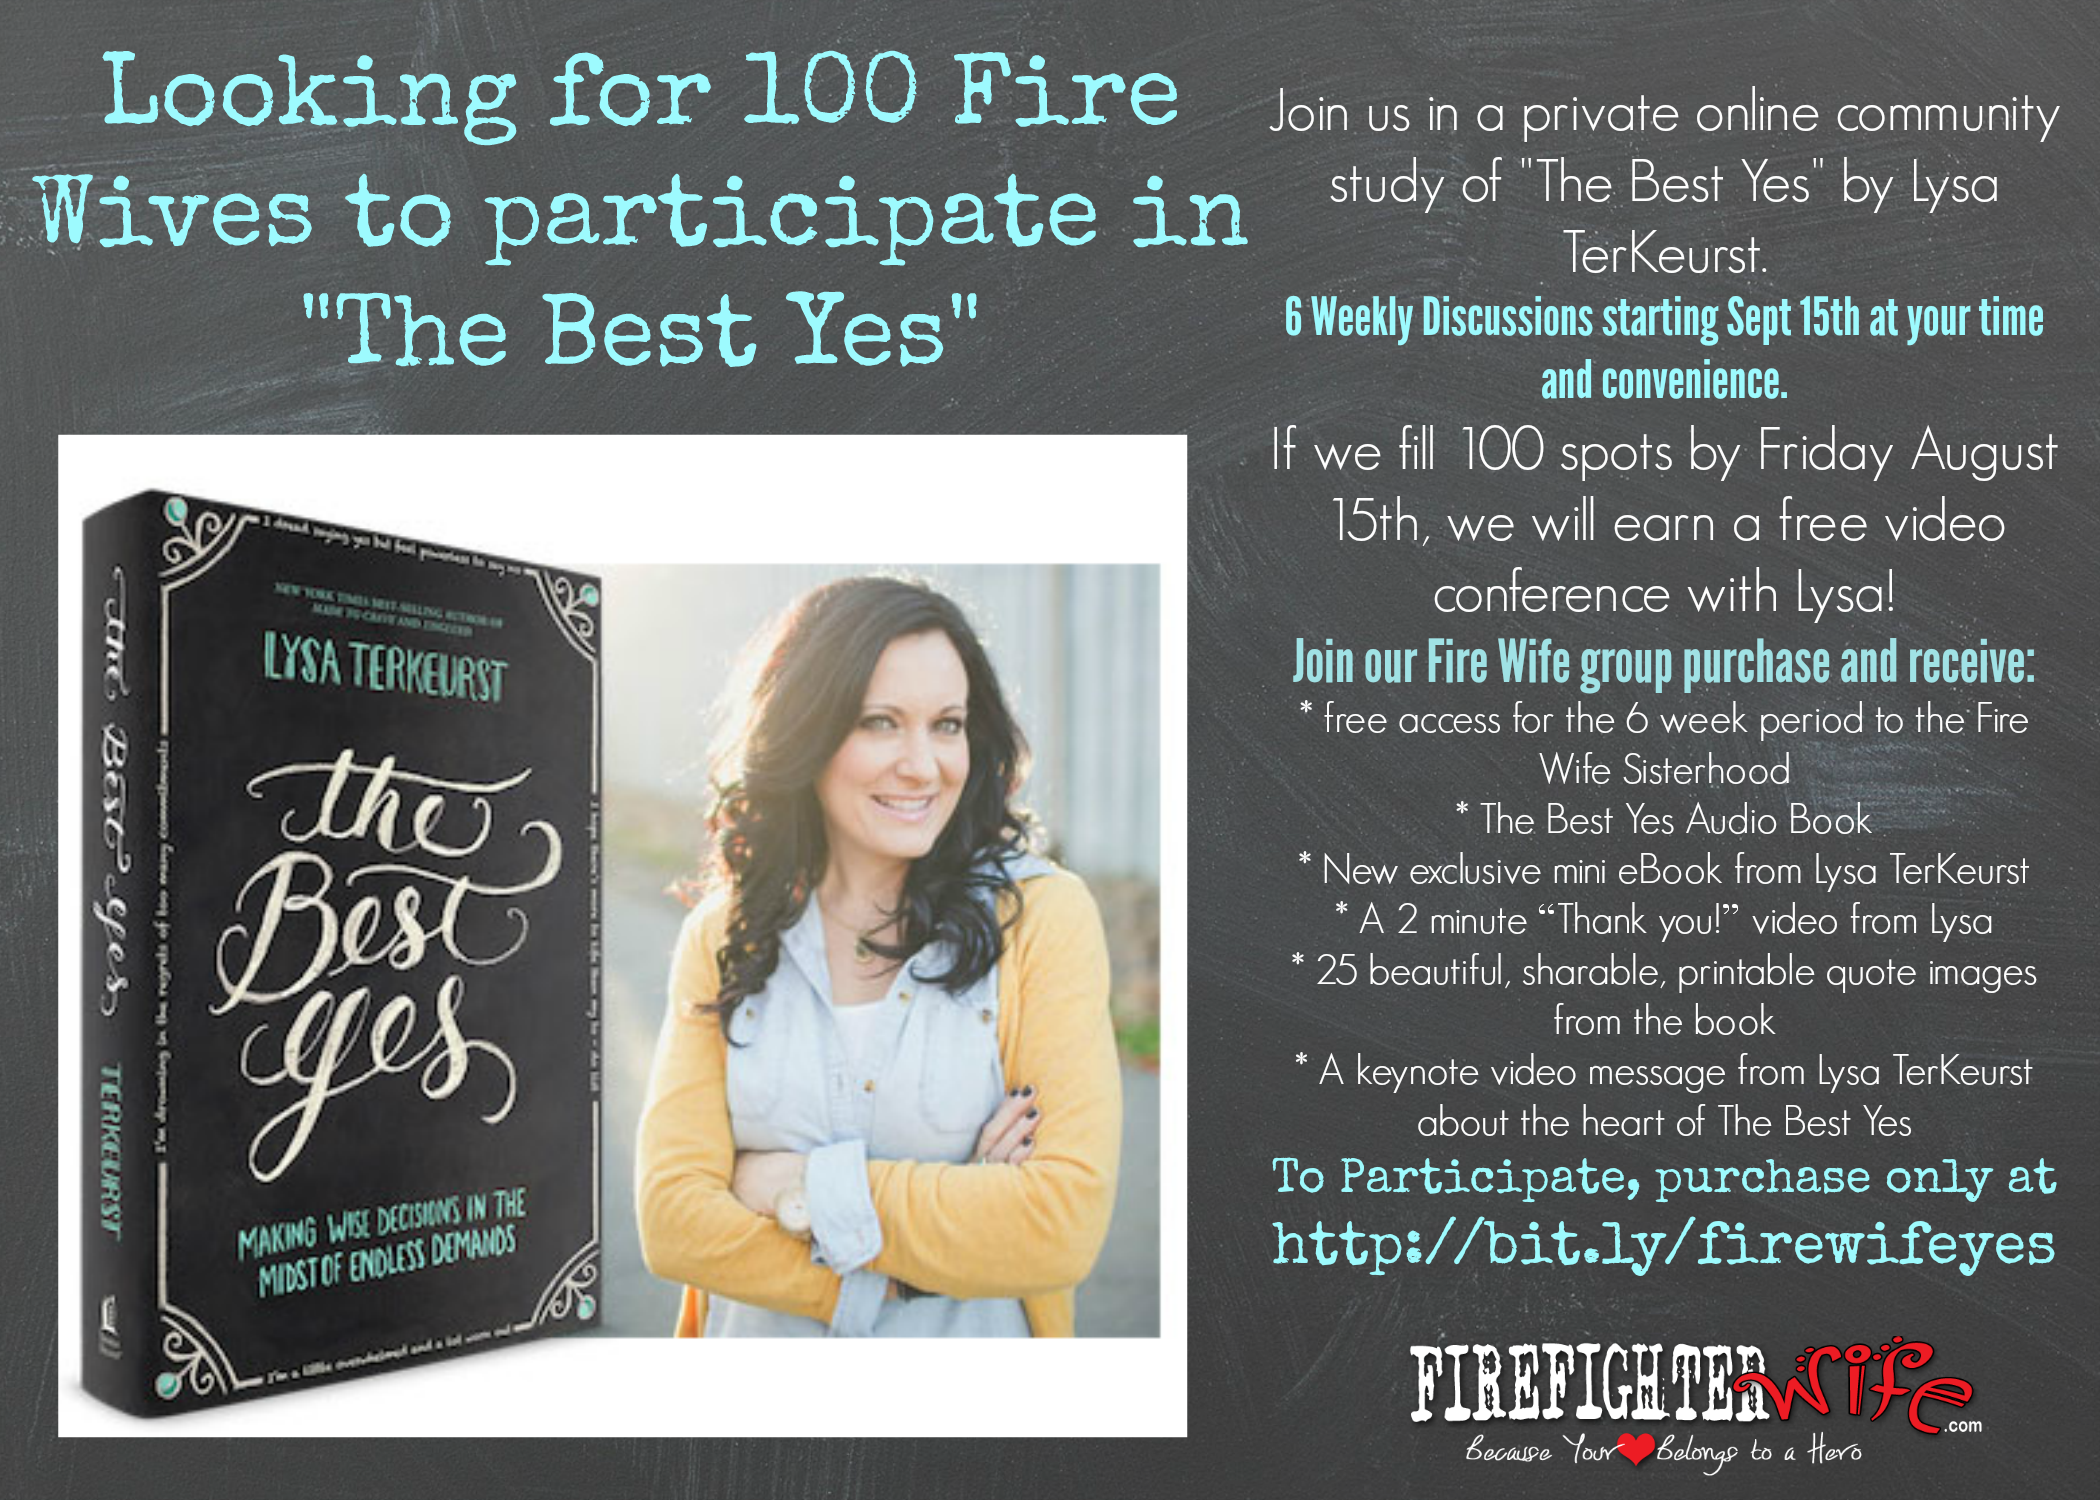 """Seeking 100 Fire Wives for an Exclusive Group Study of """"The Best Yes"""""""